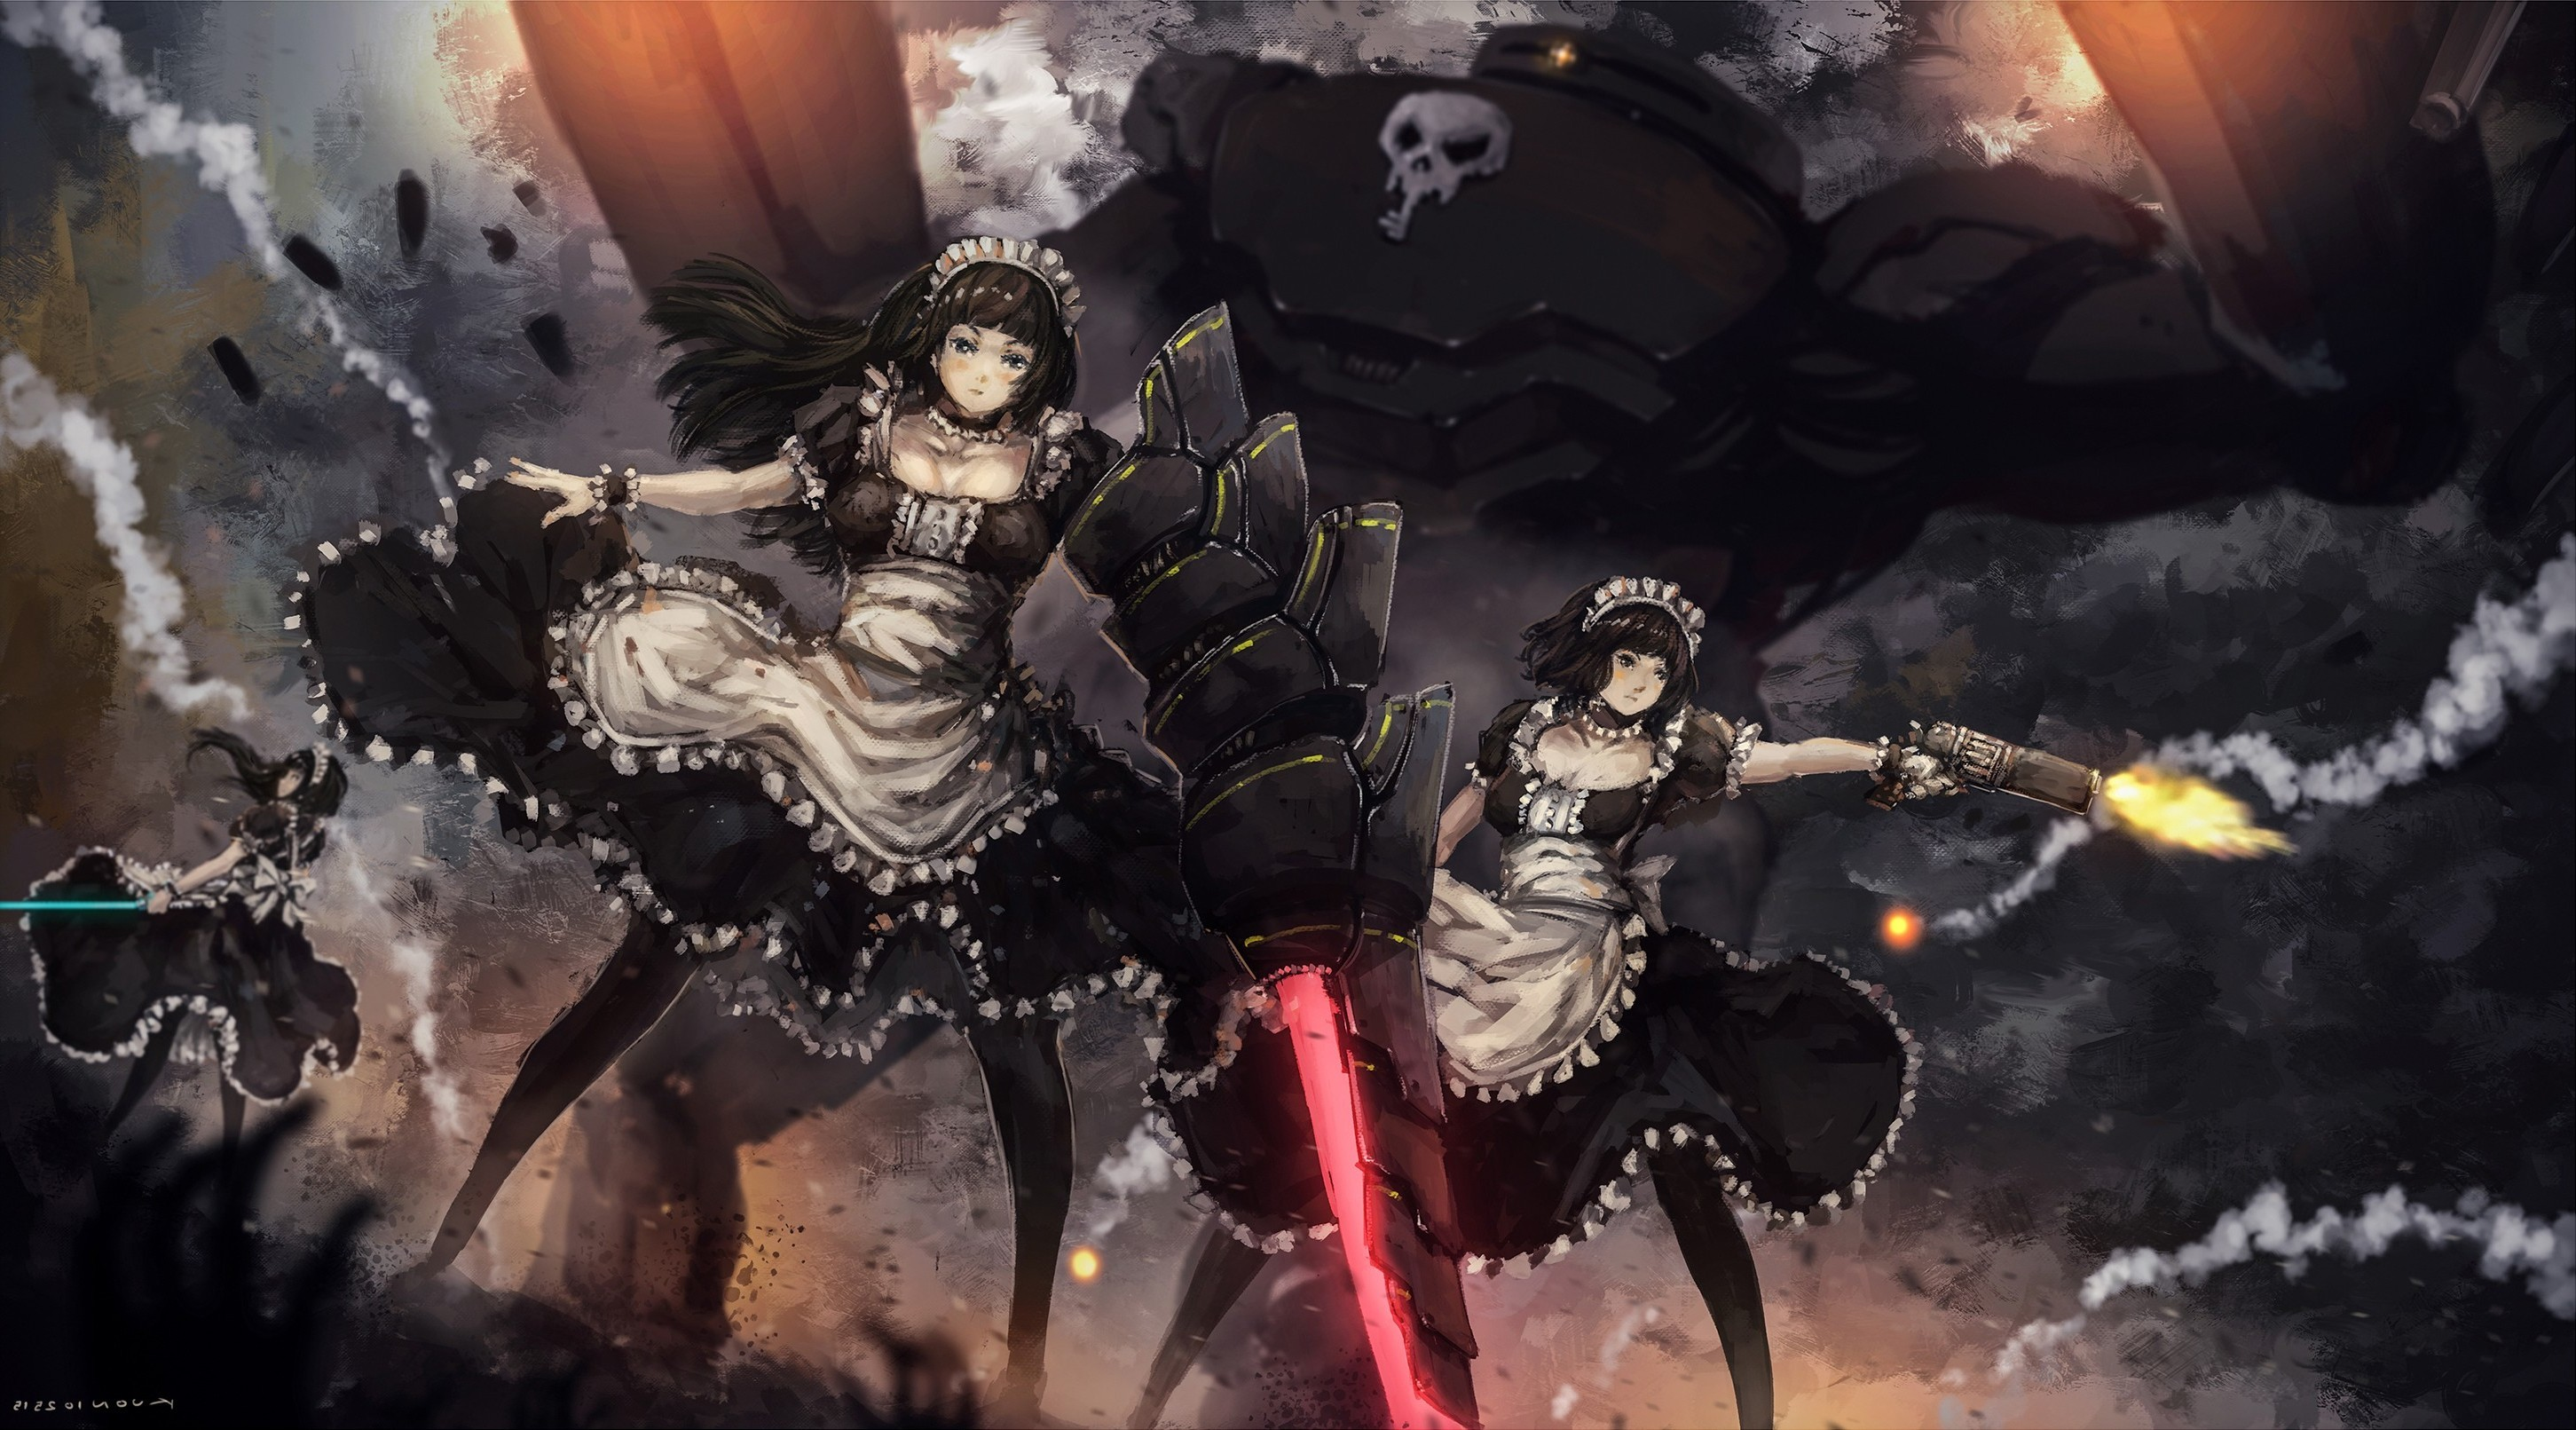 anime Girls, Original Characters, Maid Outfit, Black Hair, Headdress,  Weapon, Gun Wallpapers HD / Desktop and Mobile Backgrounds